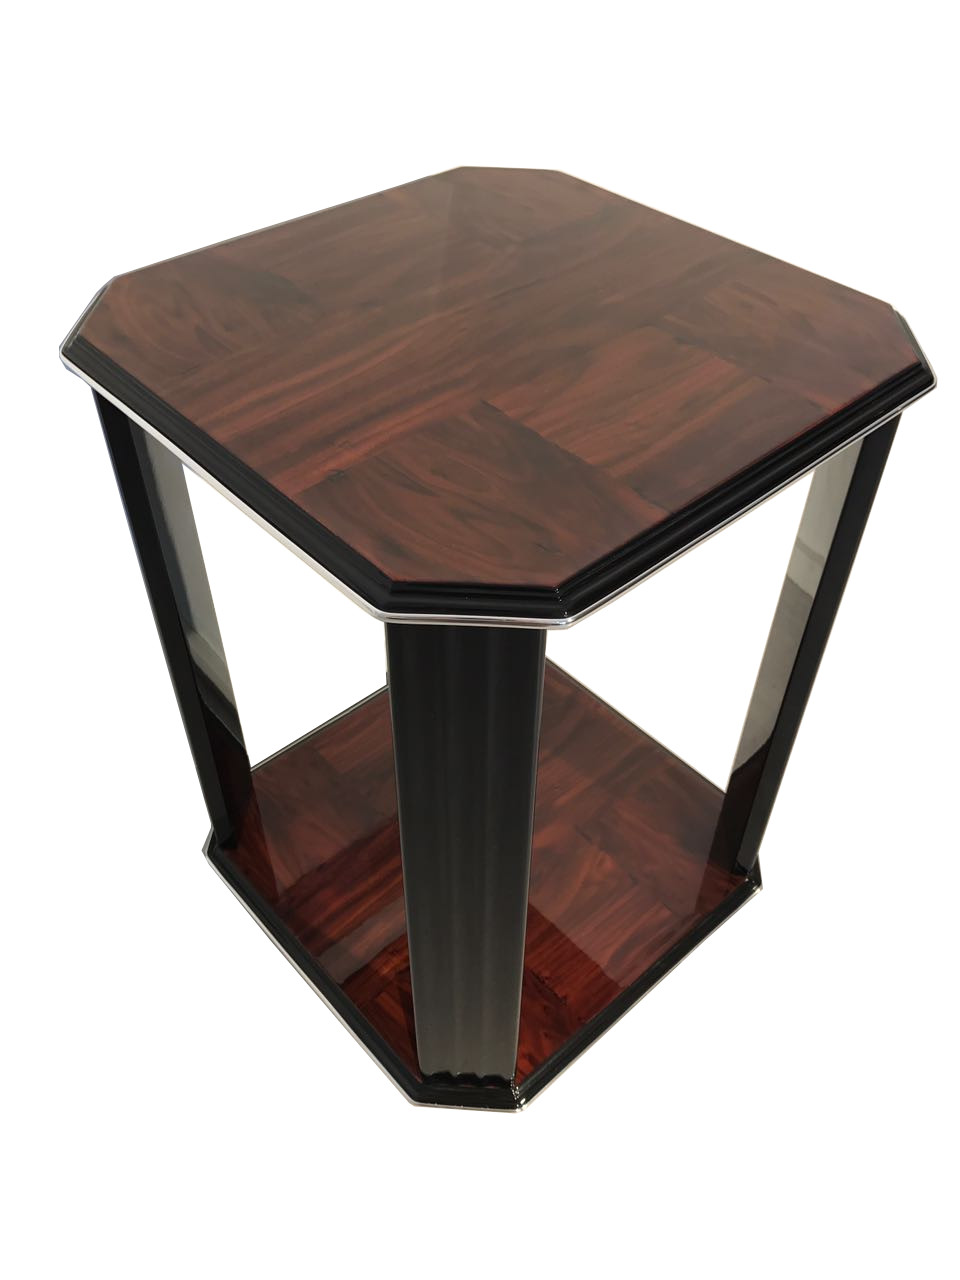 Black, High Gloss, Side Table, Art Deco, Great Foot, Living Room